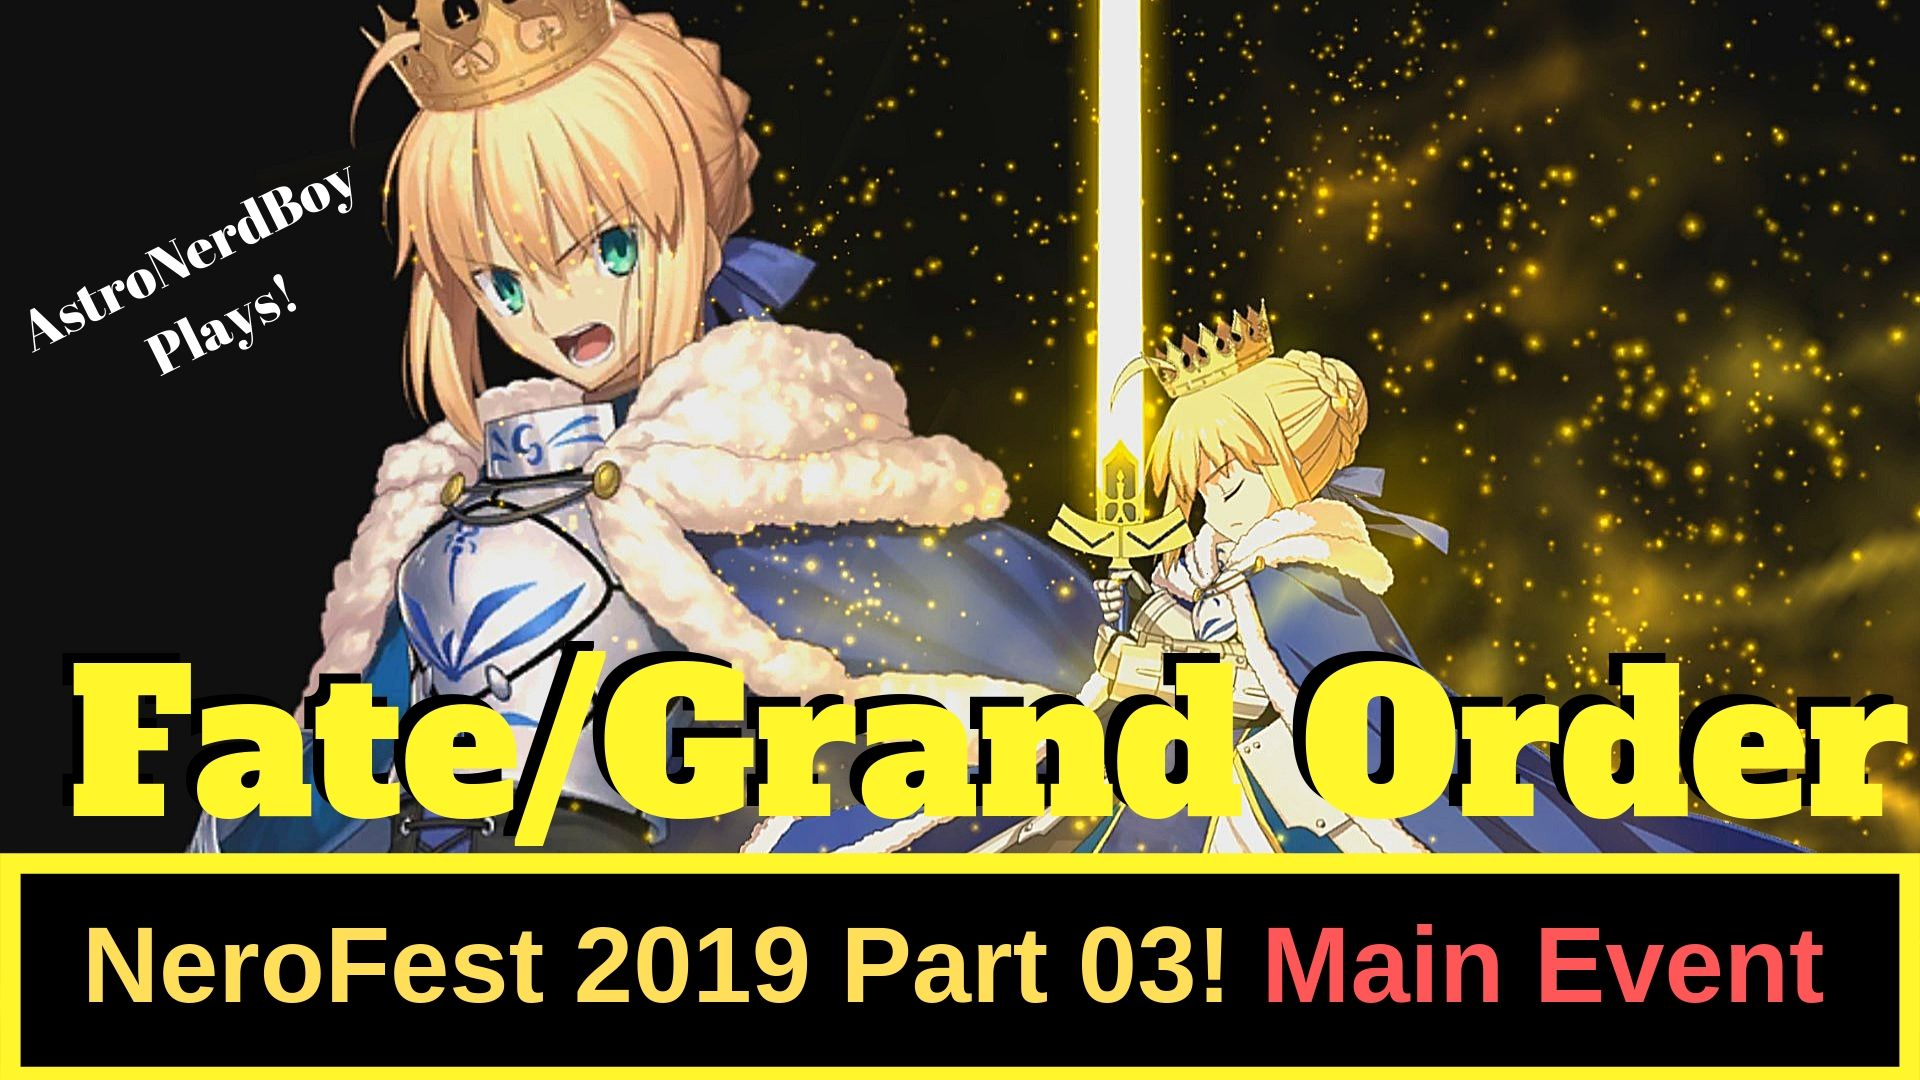 Fate/Grand Order Nero Fest 2019! Main Event